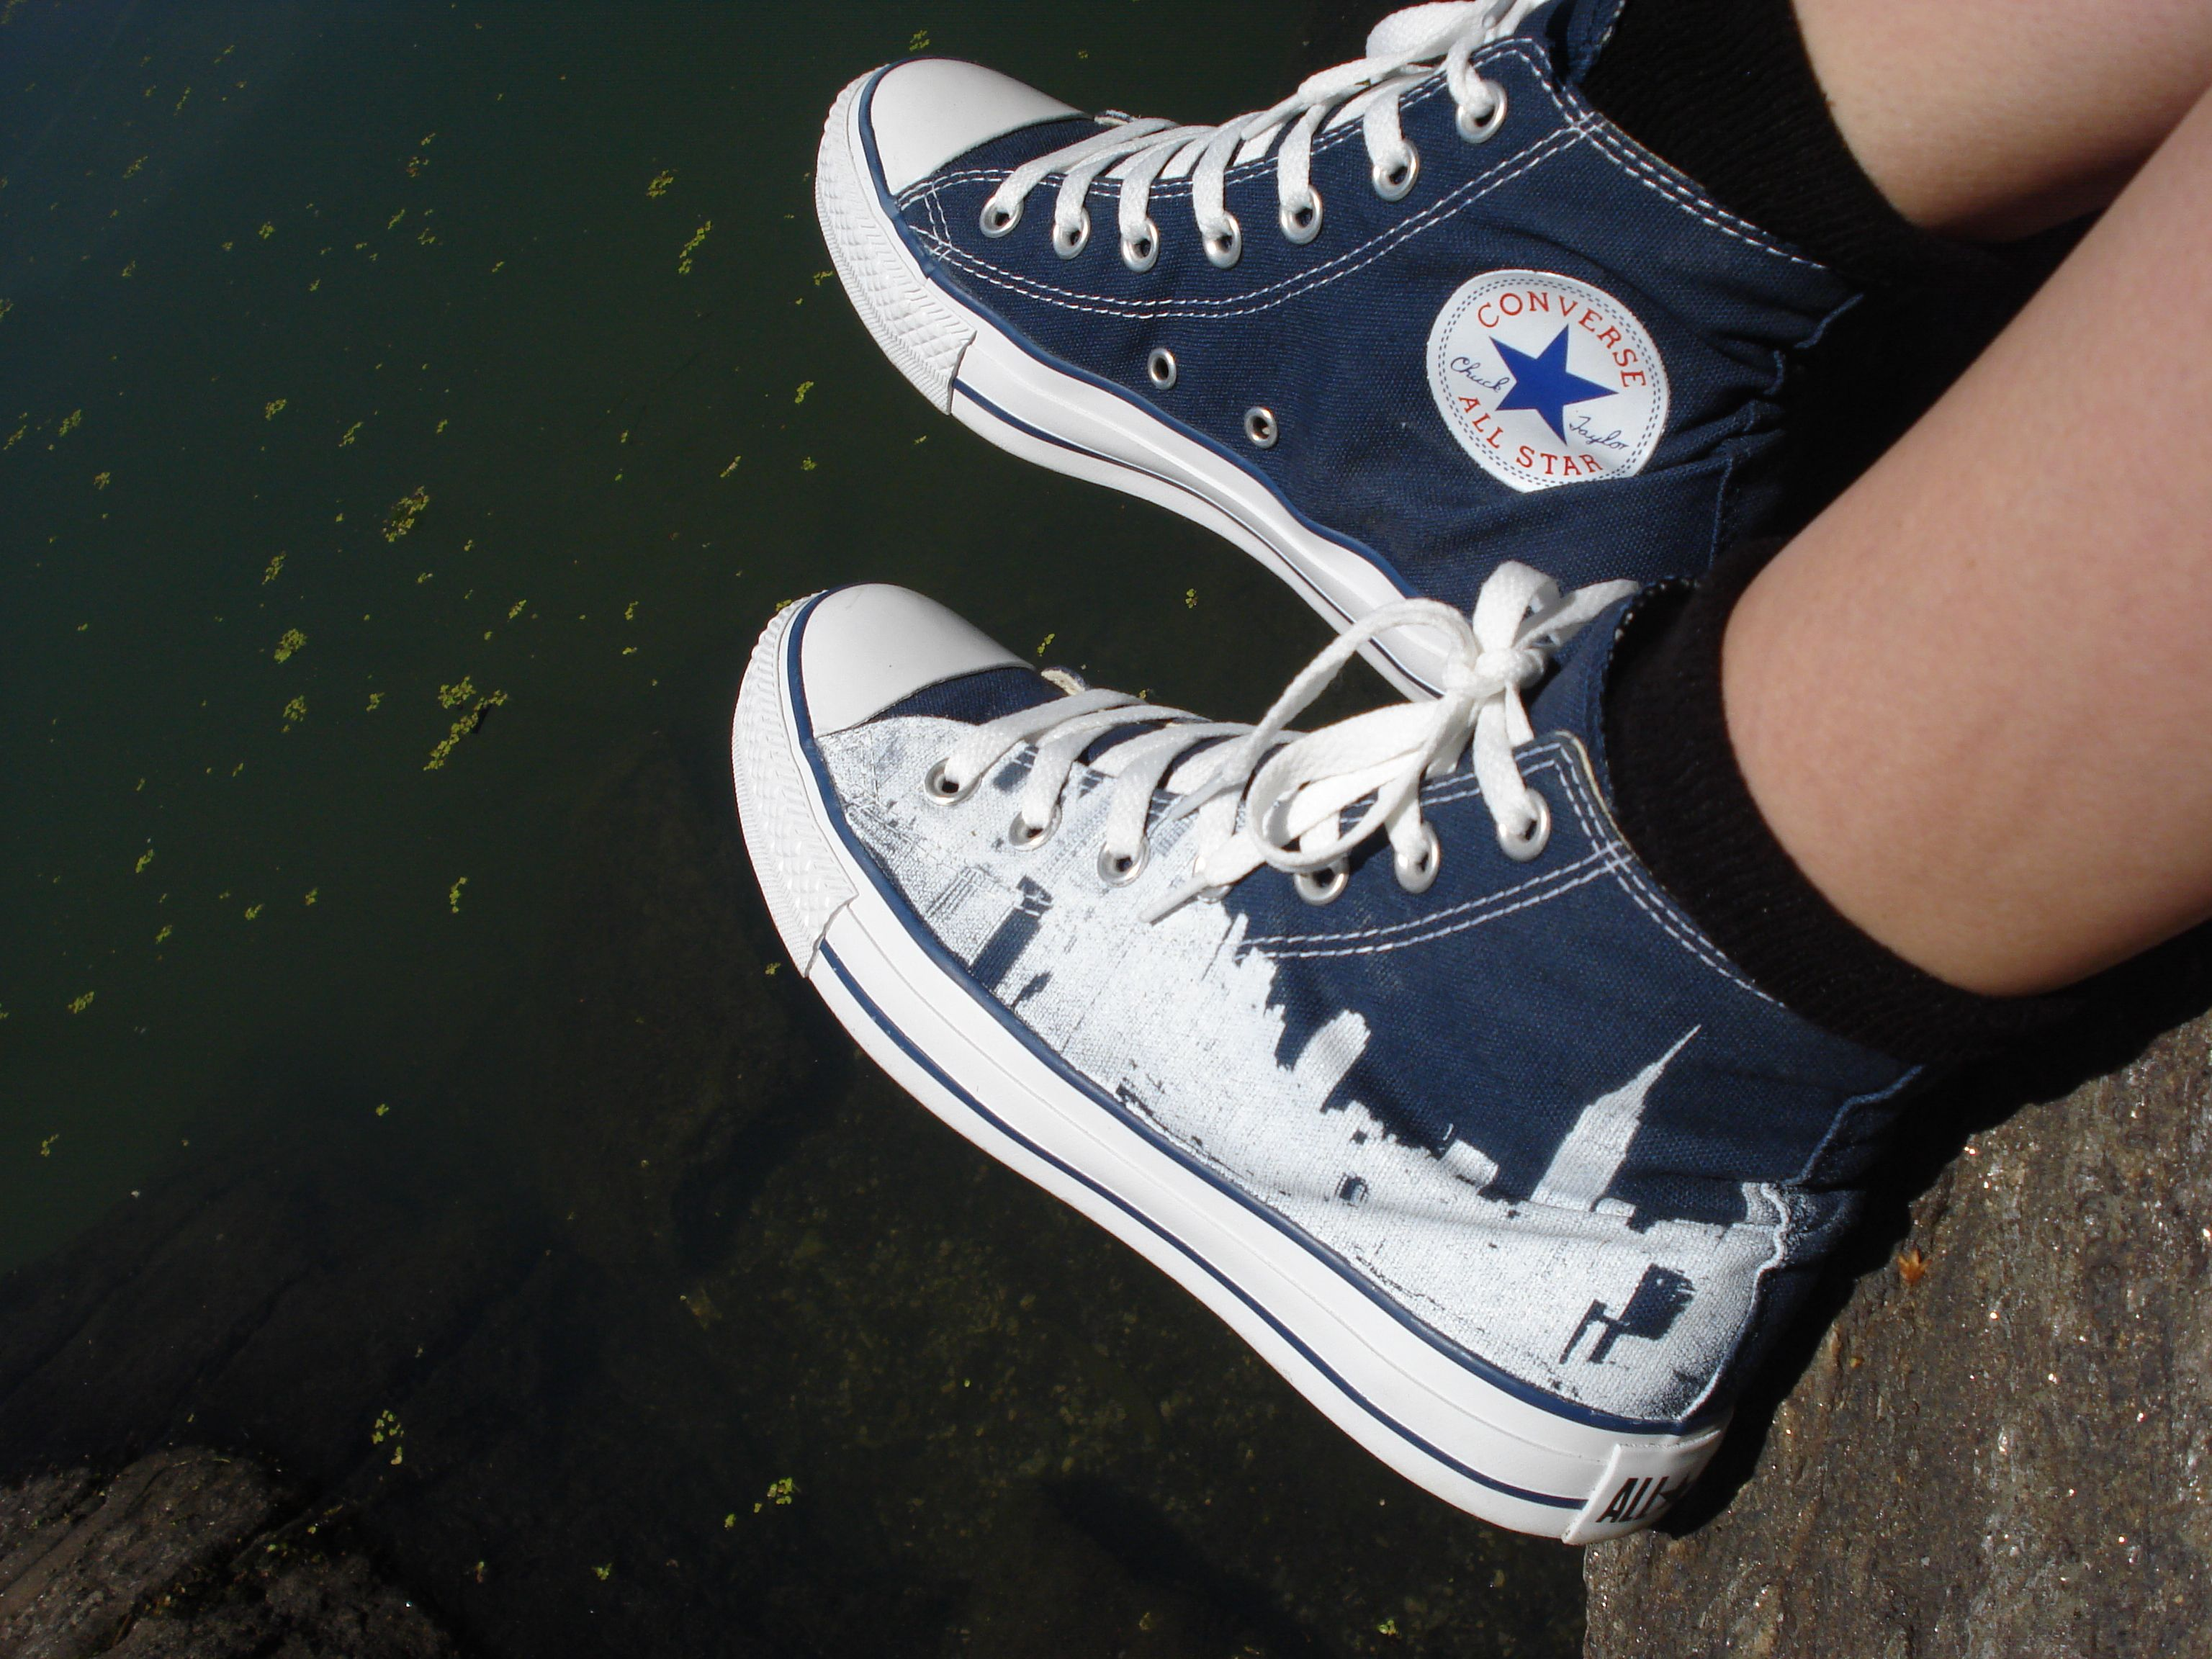 Customized Converse All Stars | Clothes | Converse shoes